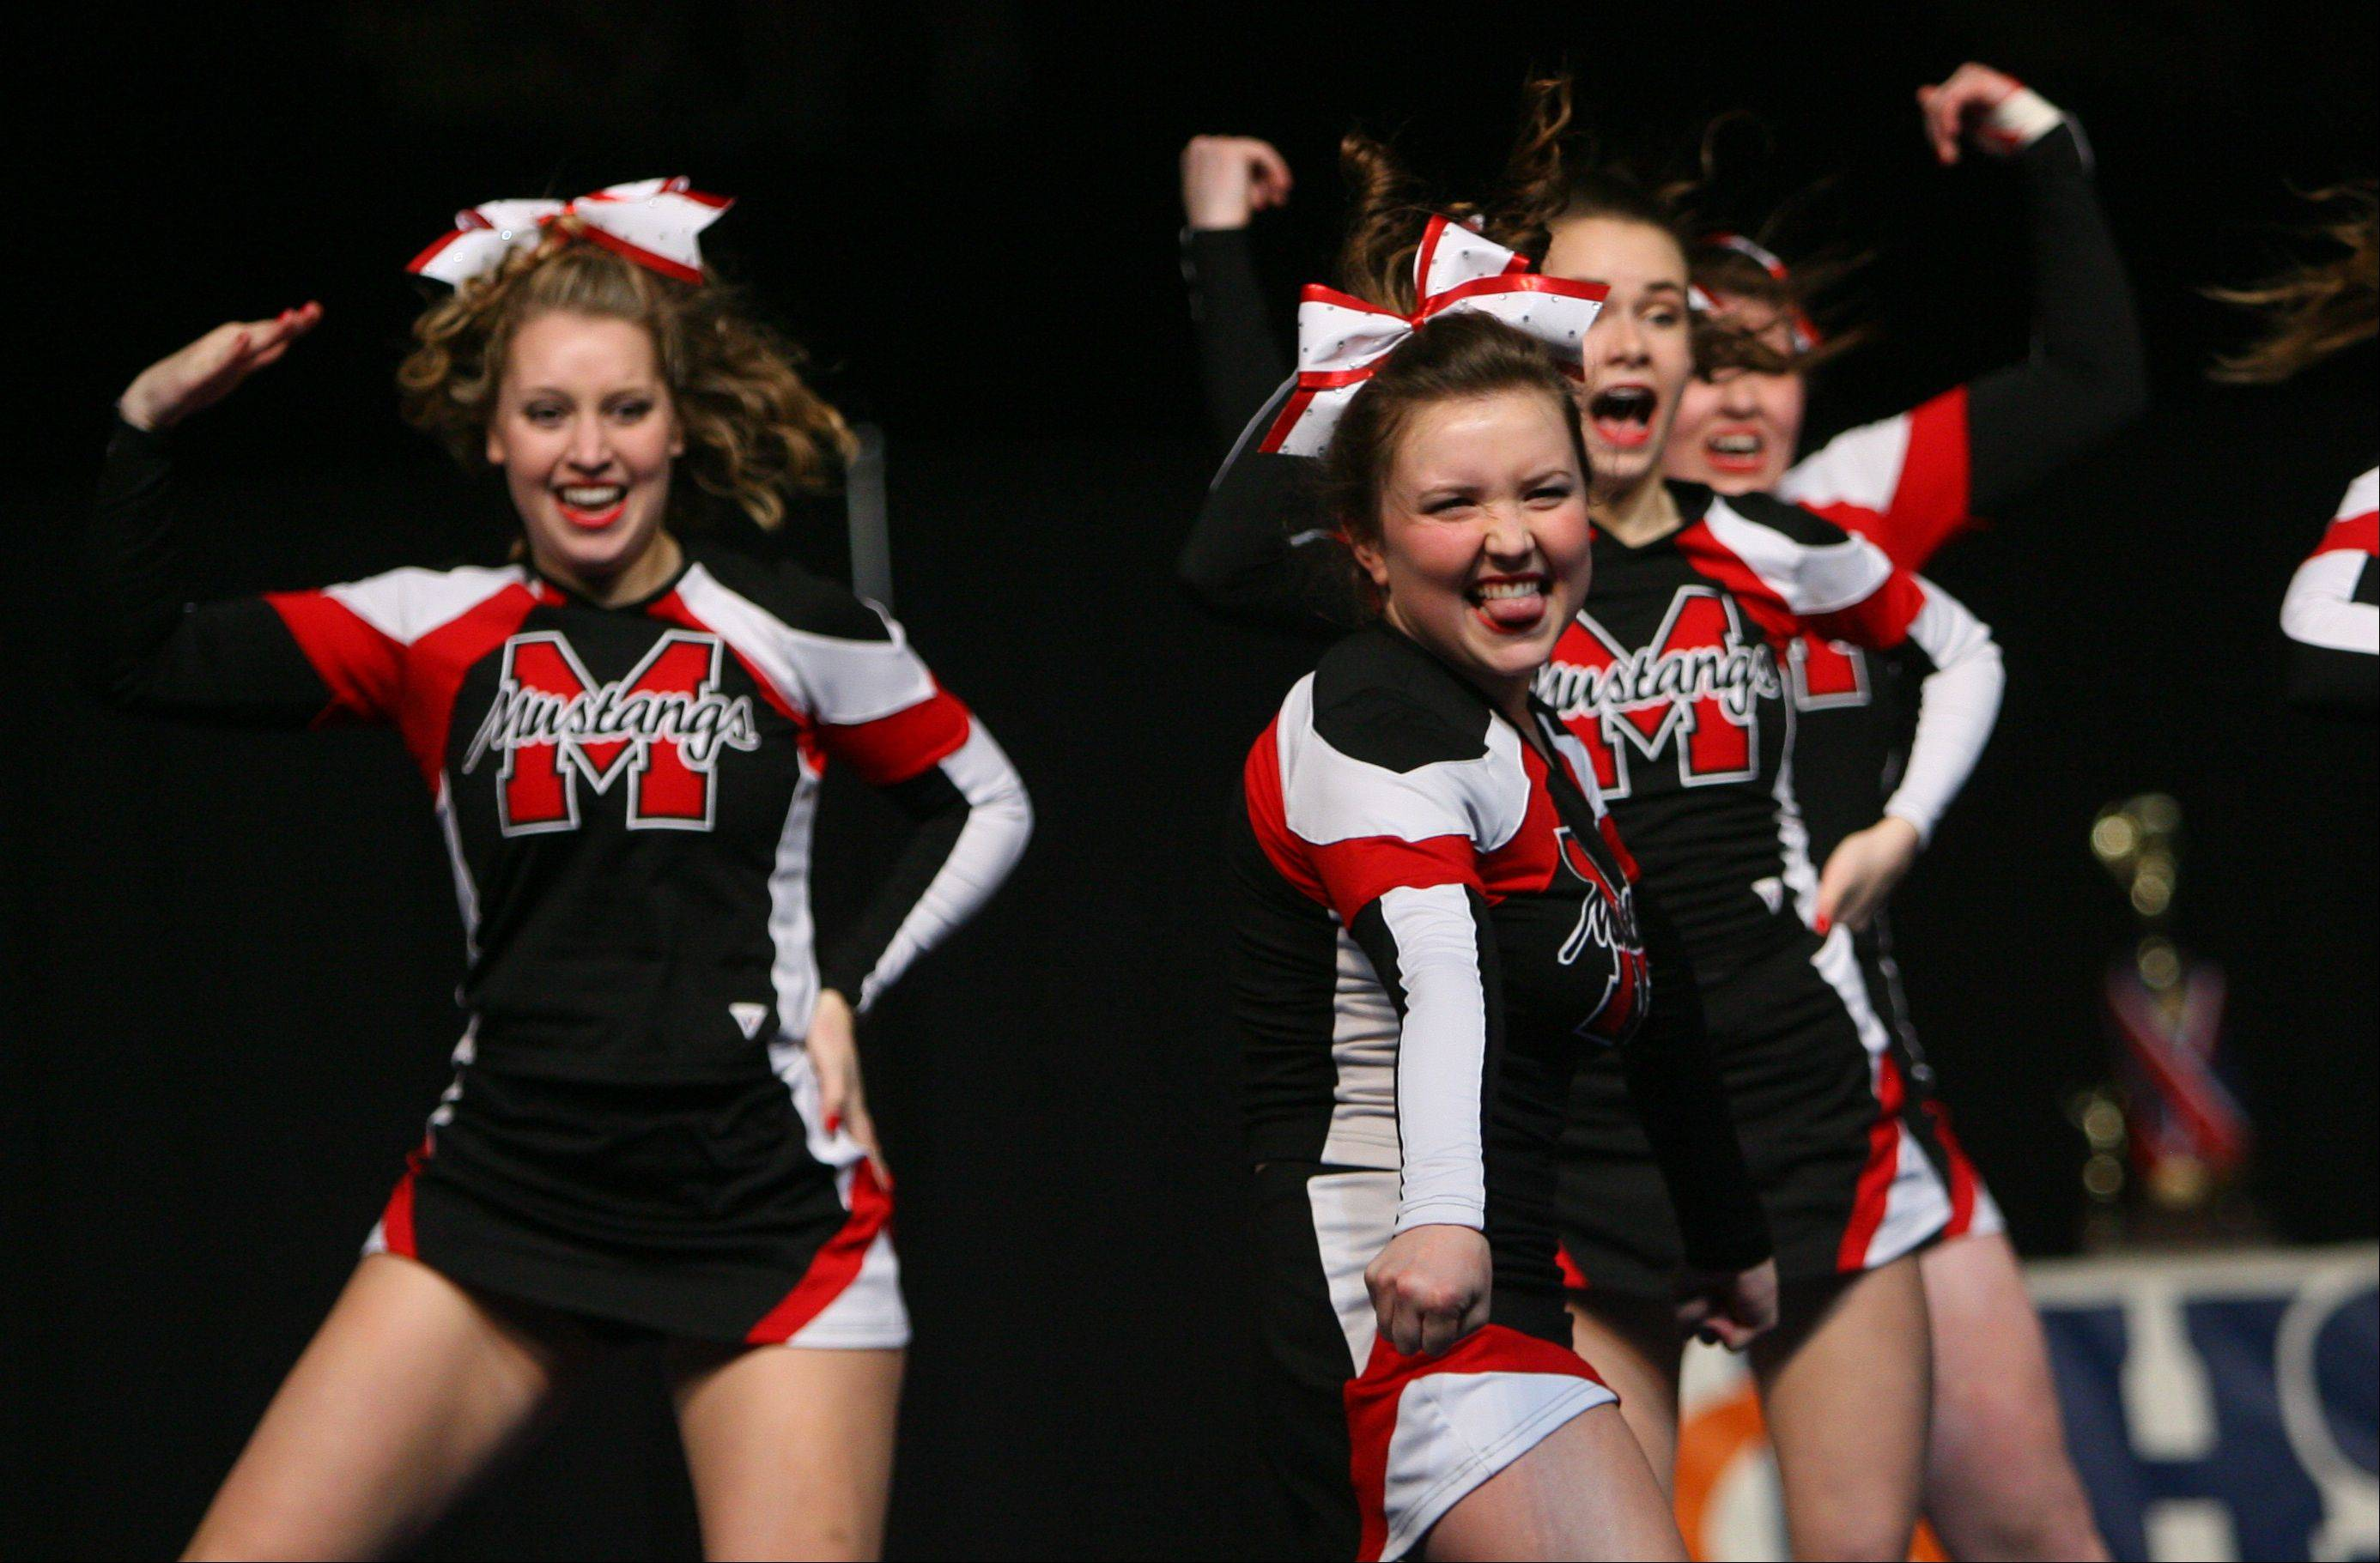 Mundelein High School competes in the prelims Friday at the U.S. Cellular Coliseum in Bloomington. The squad advanced to Saturday's finals in the coed division.